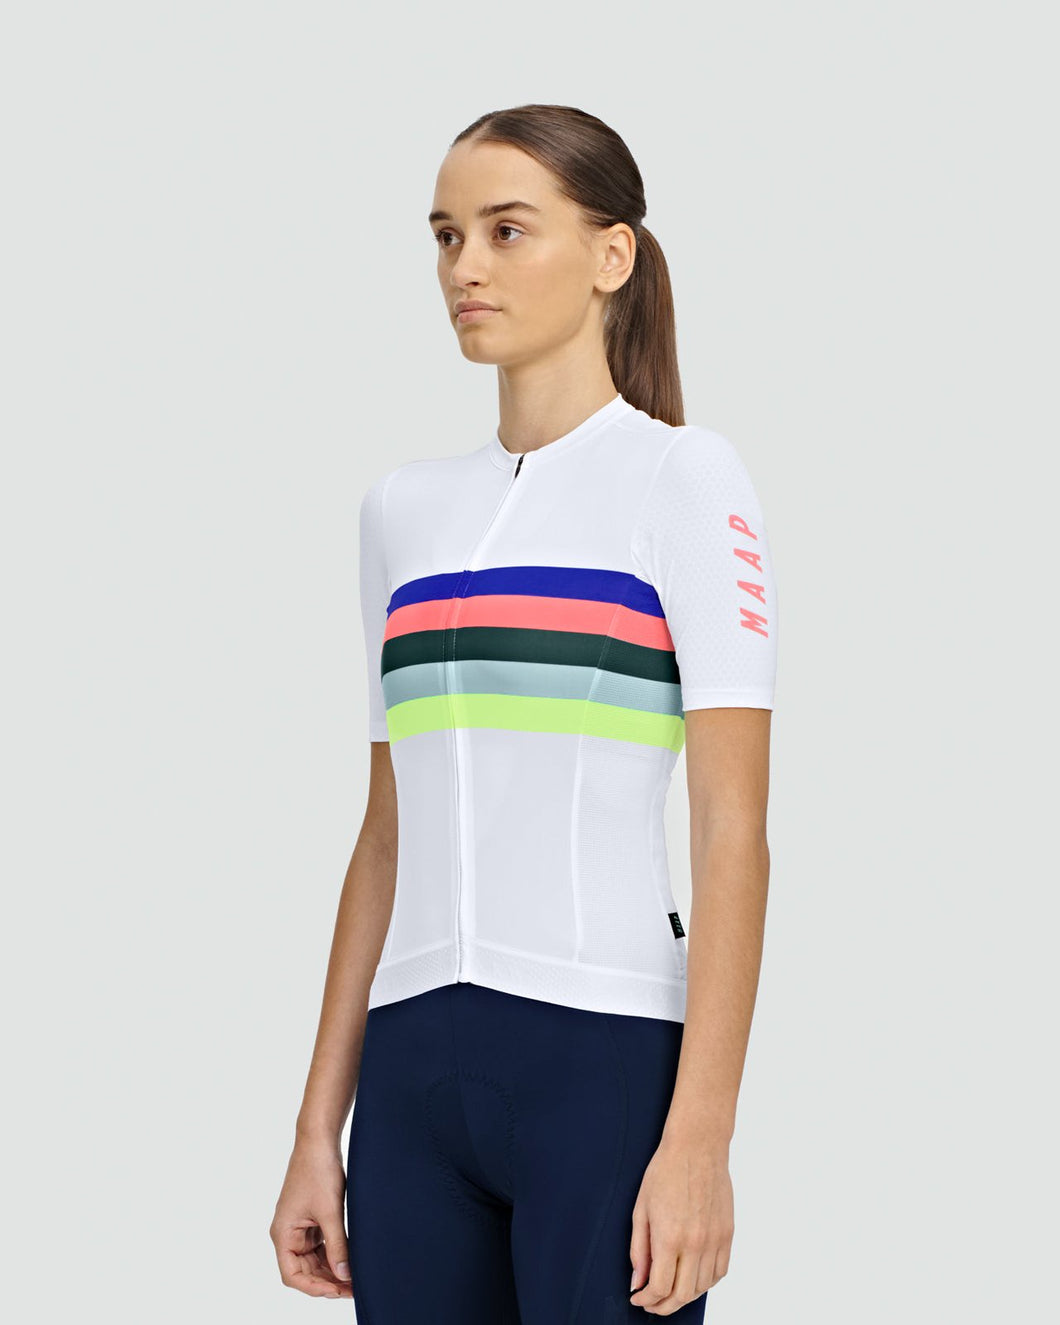 MAAP Women's World Pro Hex Jersey, 2020 - Cycle Closet